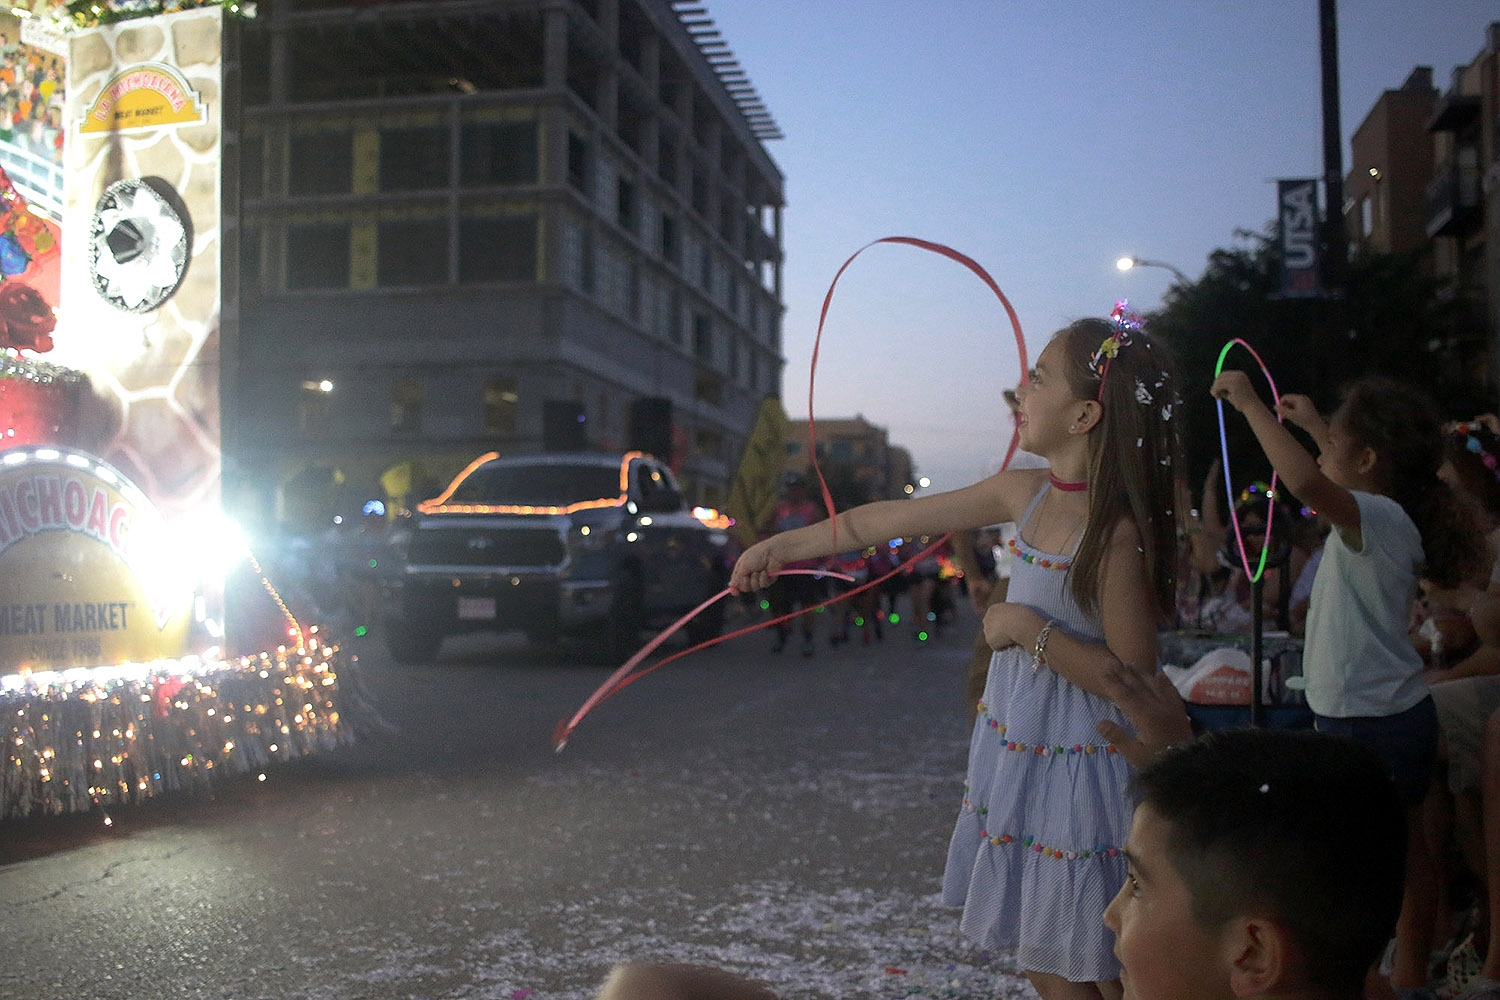 Amelia Stephenson, 6 enjoying the parade with family during Fiesta Flambeau Saturday night April, 27 2019. <em>Photo by Noah Alcala Bach | Heron contributor</em>